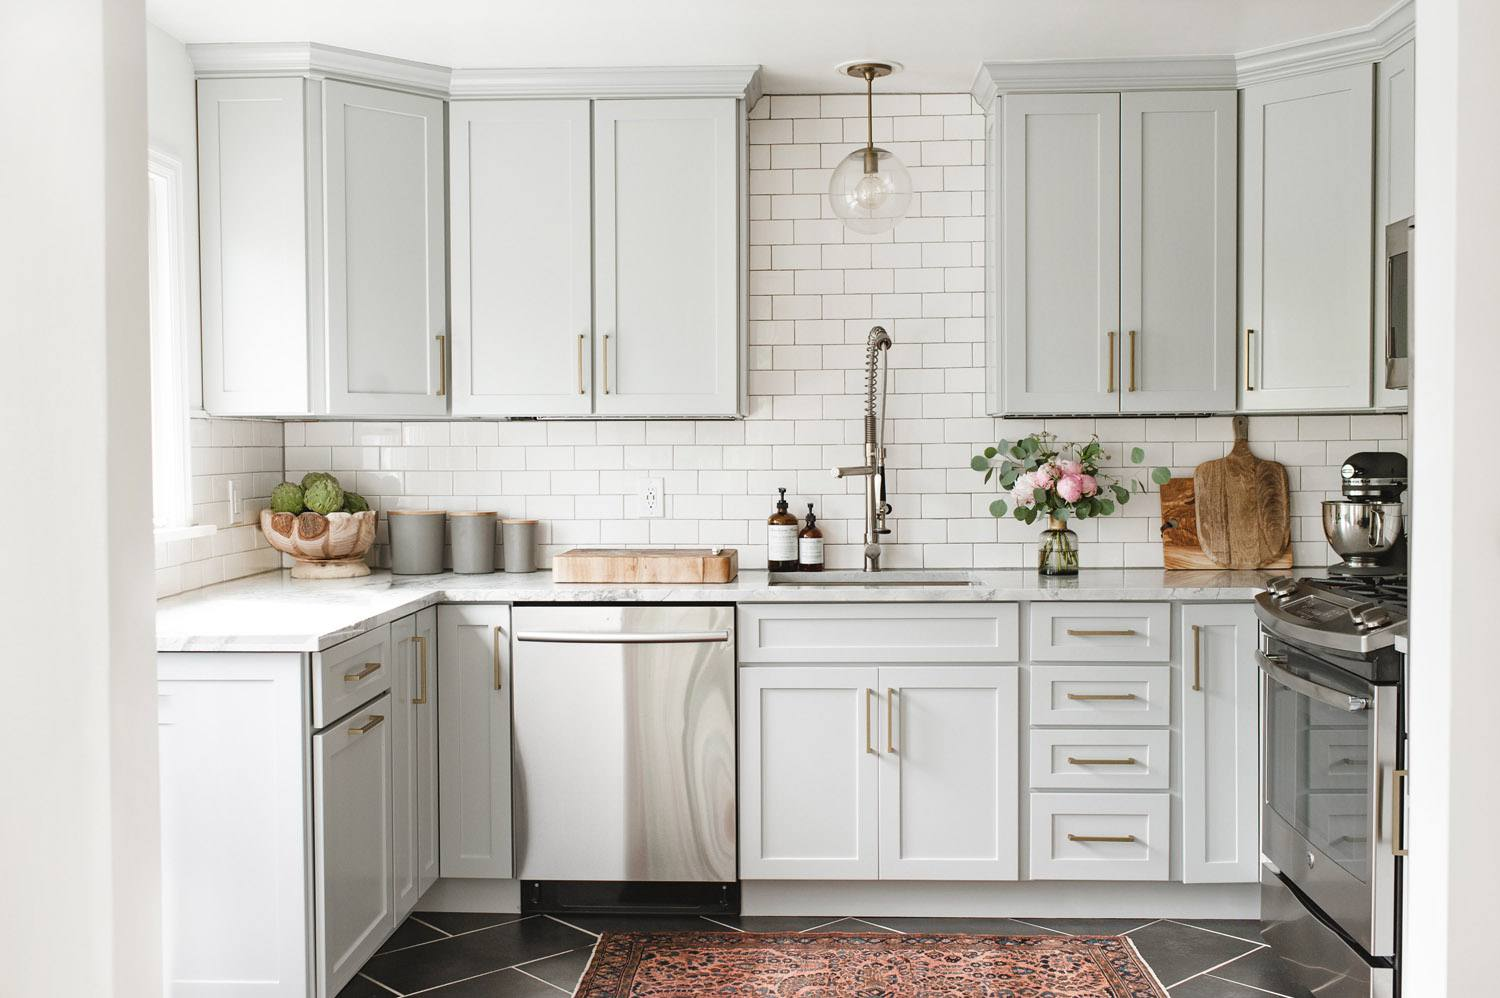 Kitchen With Subway Tile And Light Gray Cabinet